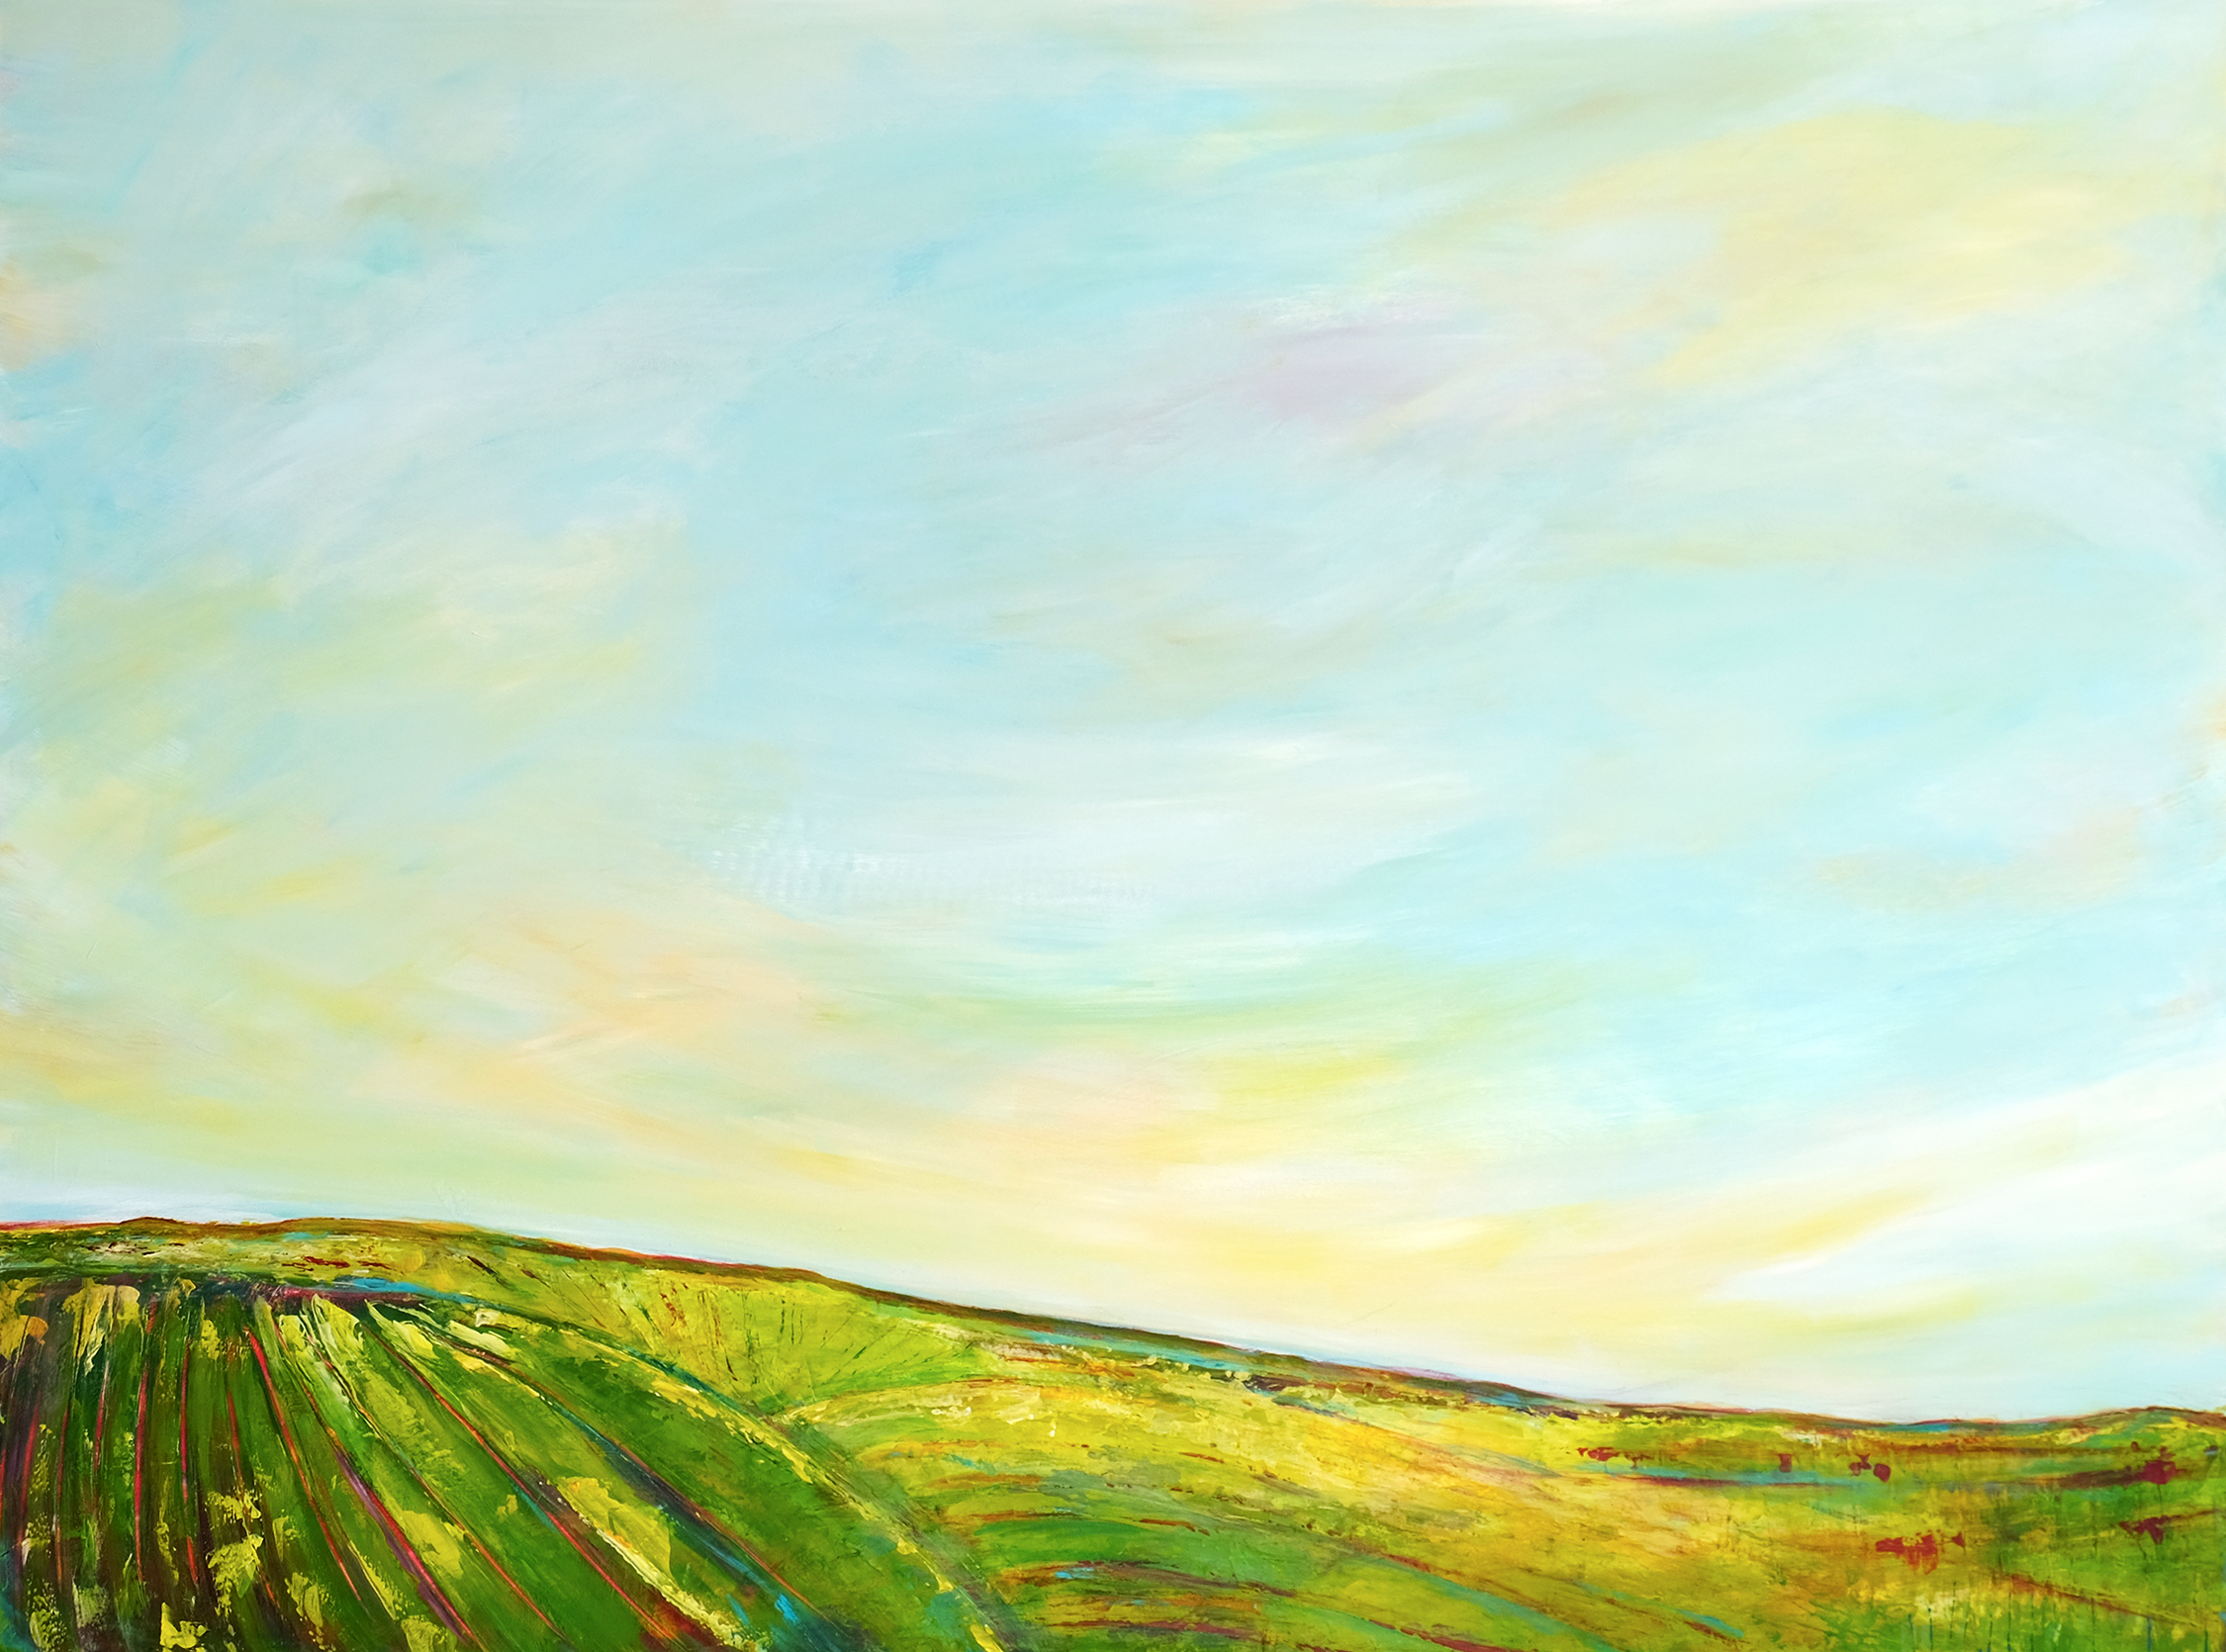 Horizon painting.  Low rolling hills in greens and golds under an expansive blue sky with golden light.